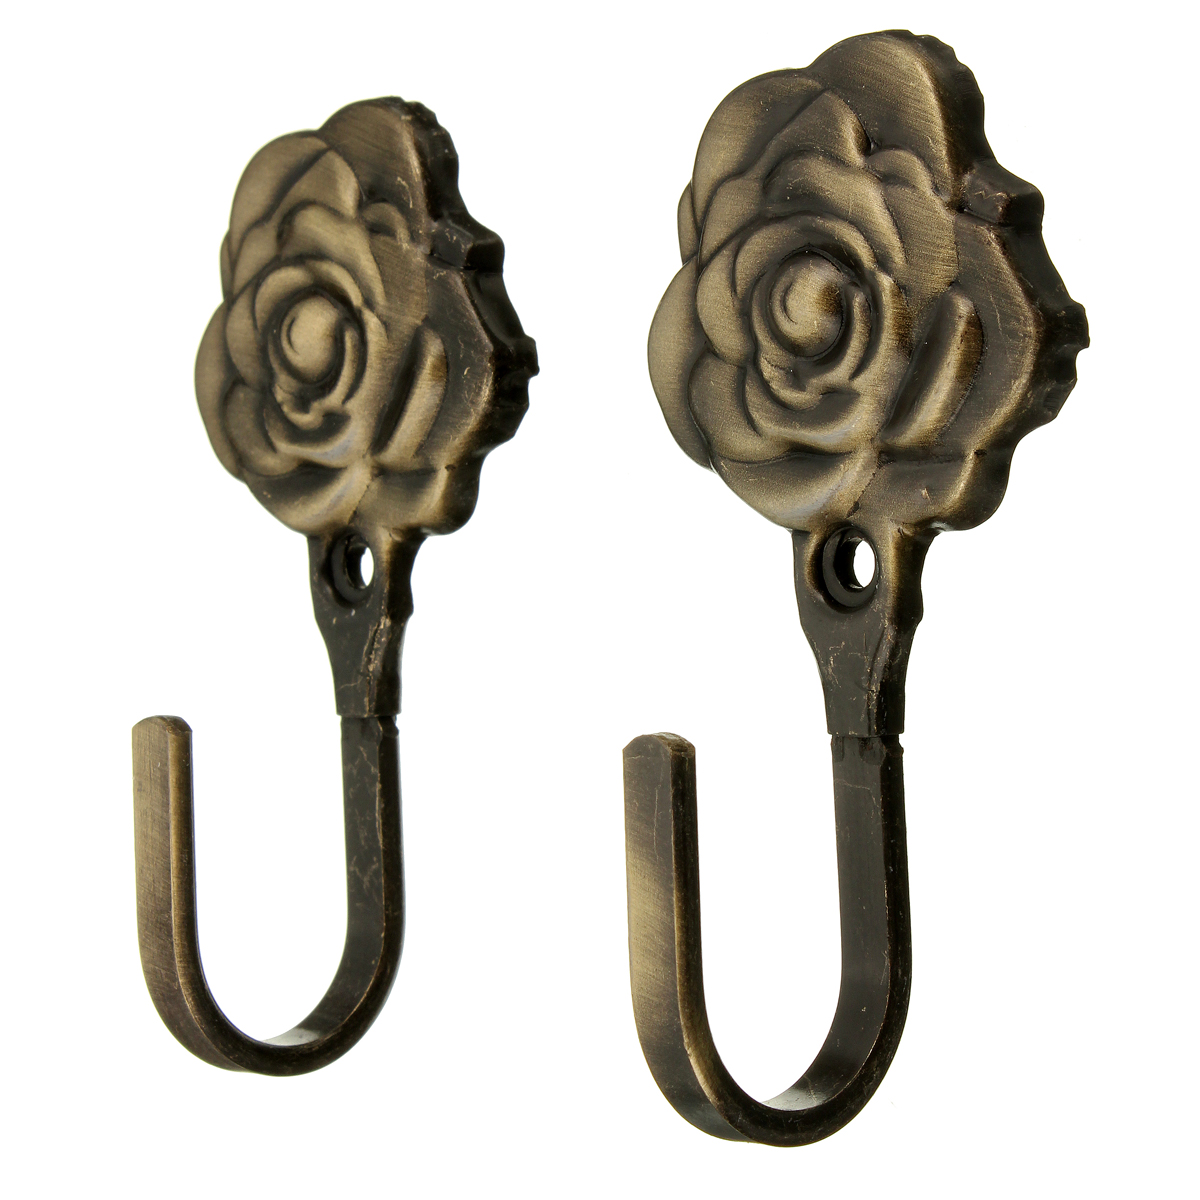 4Color-2Pcs-Metal-Rose-Flower-Curtain-Tie-Back-Tieback-Holders-Wall ...